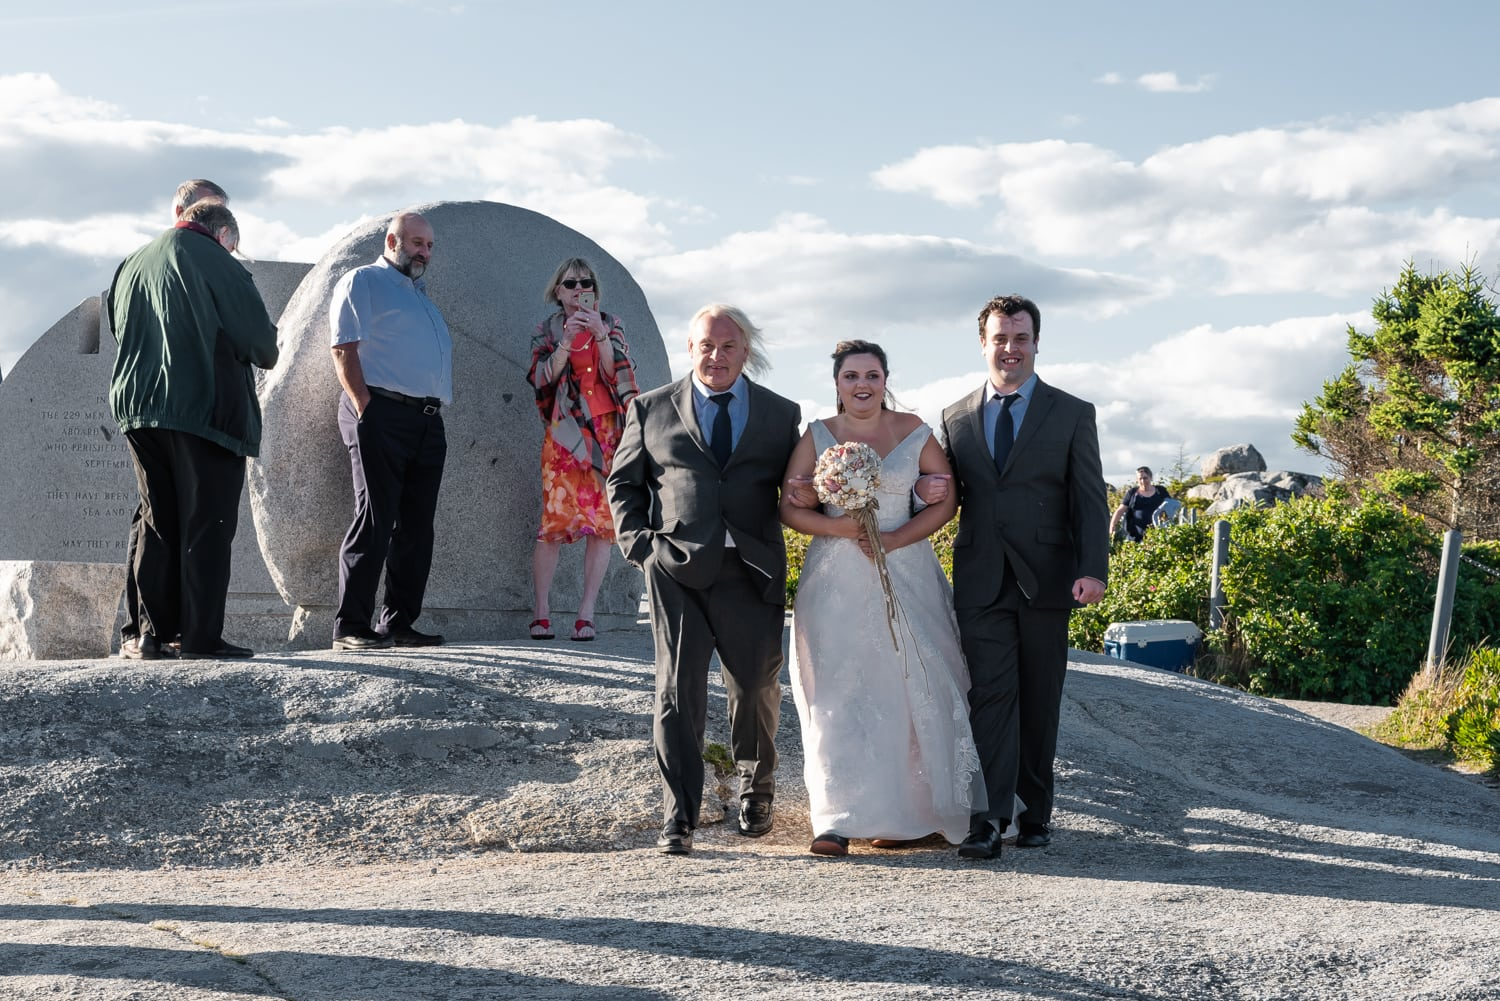 swiss air monument, wedding ceremony, bride, father of the bride, walking up the aisle, ocean wedding